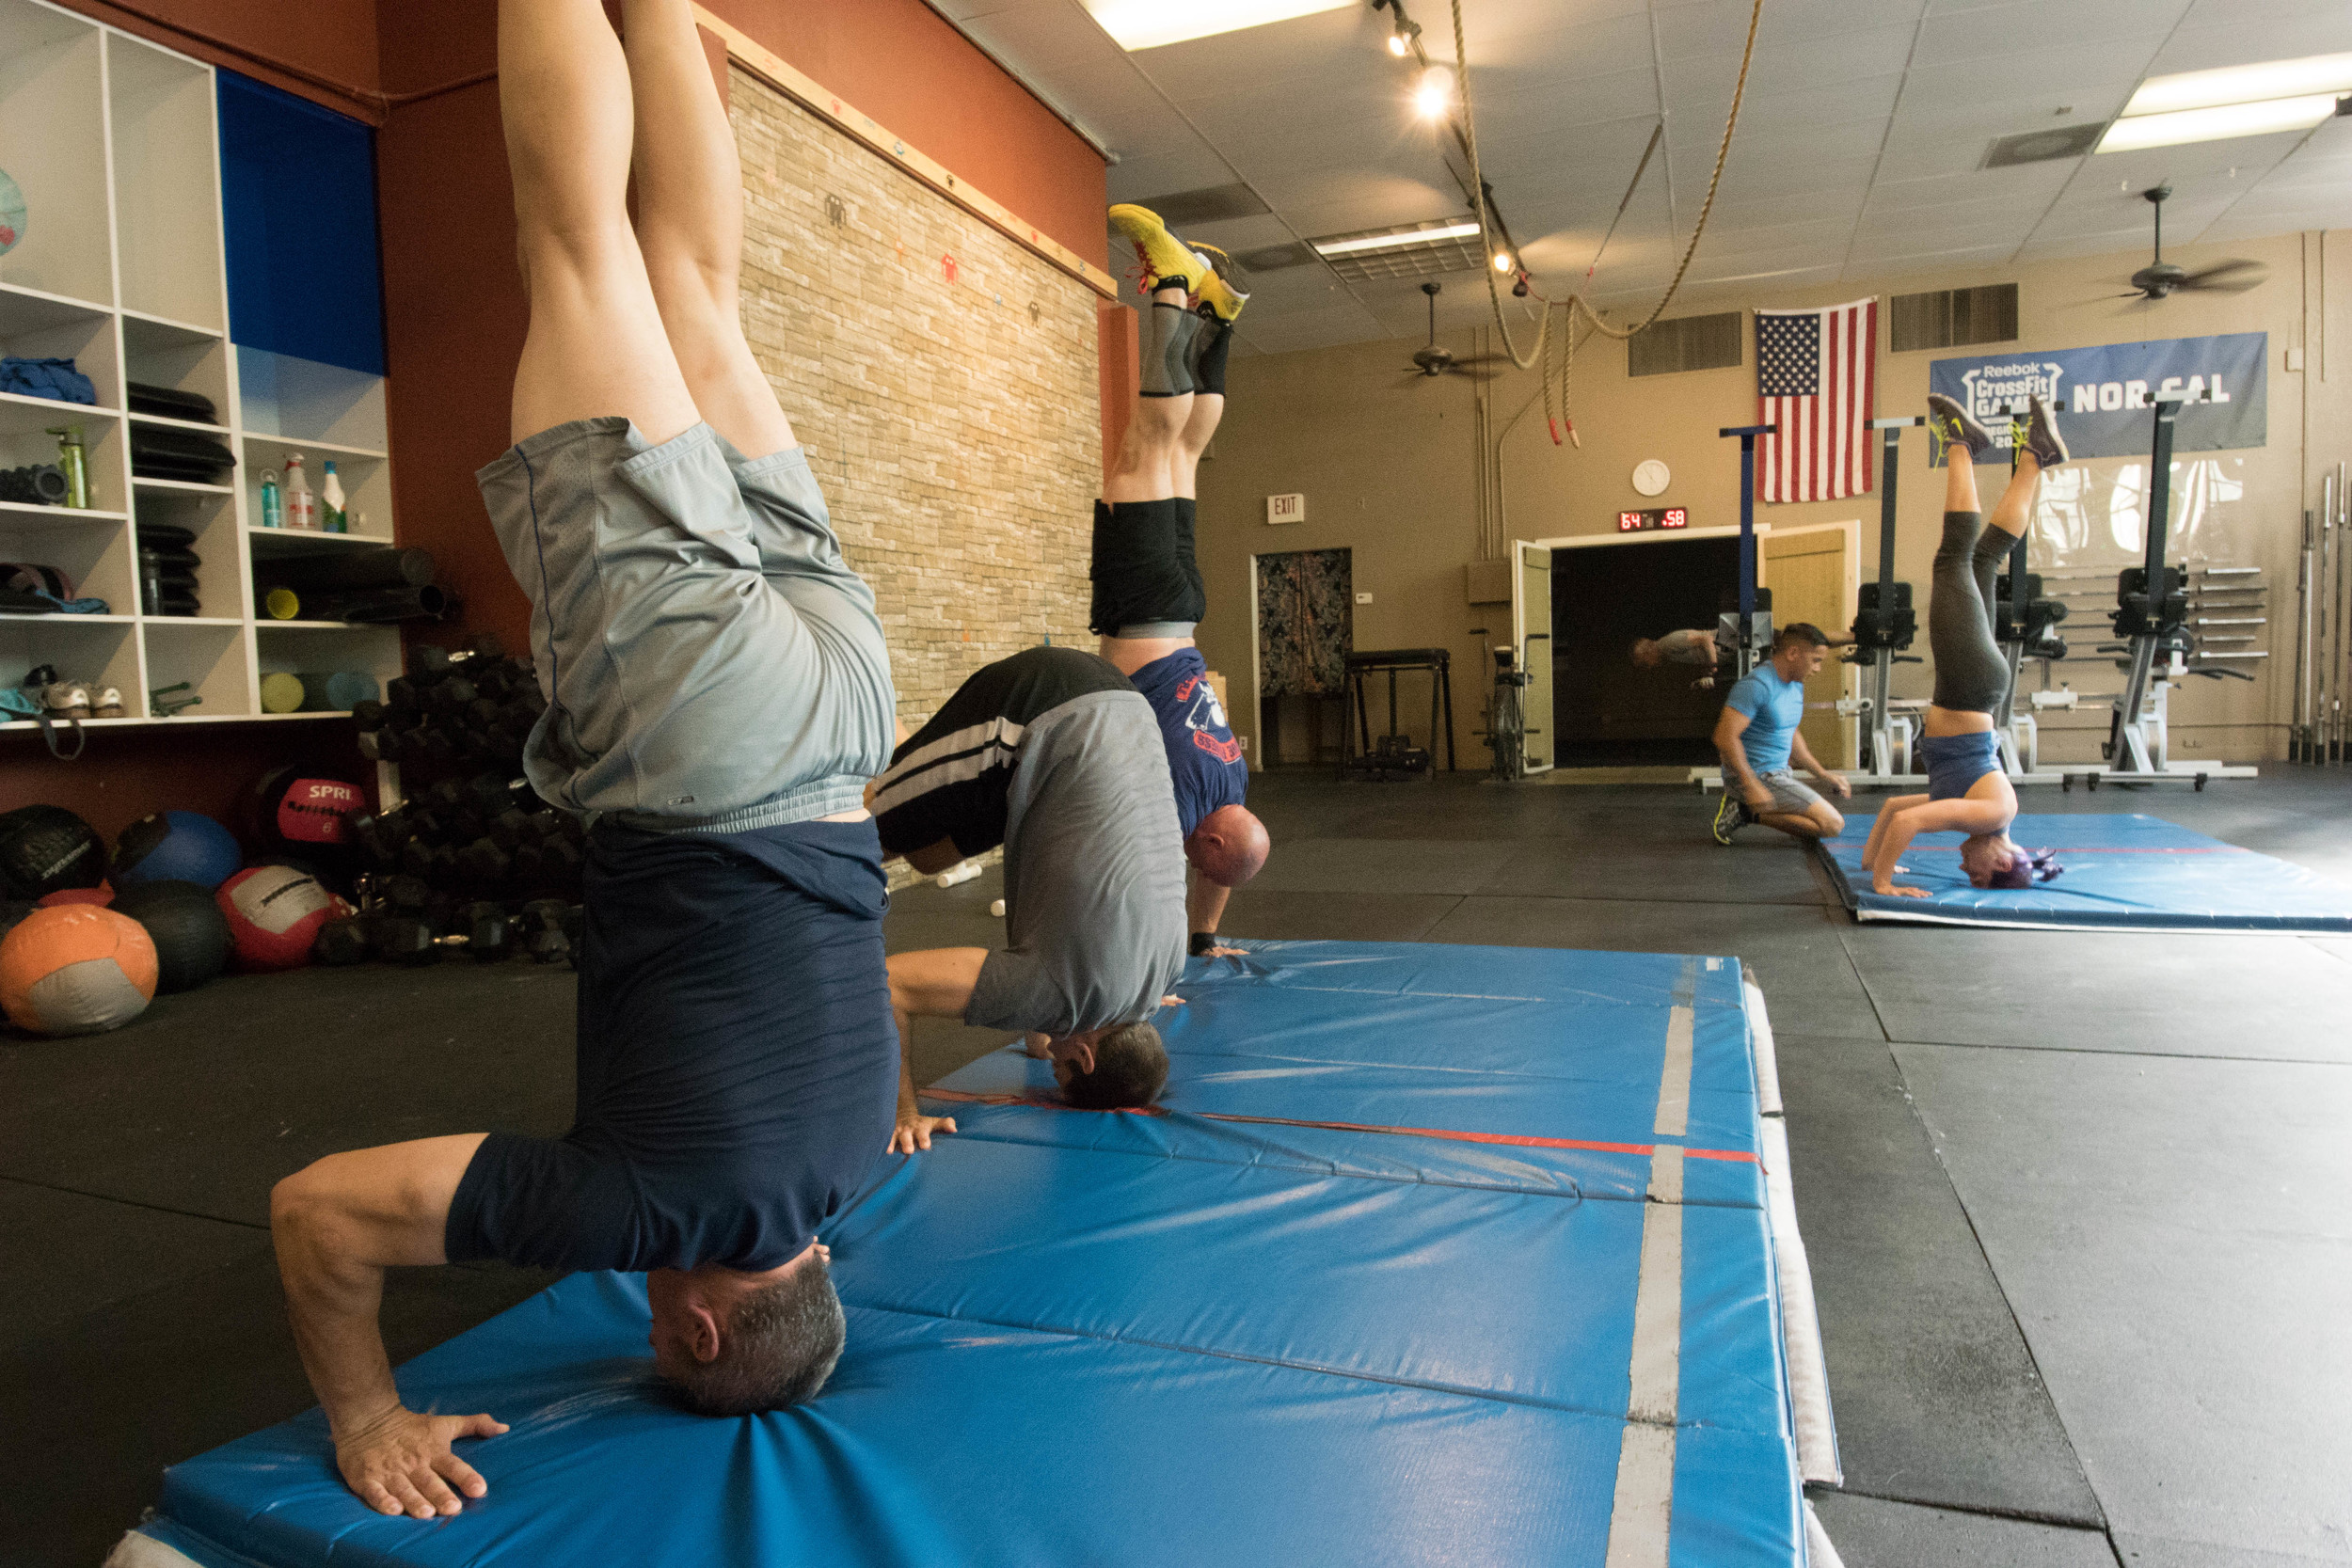 The 4:30 class shown working on pike to headstand to handstand!